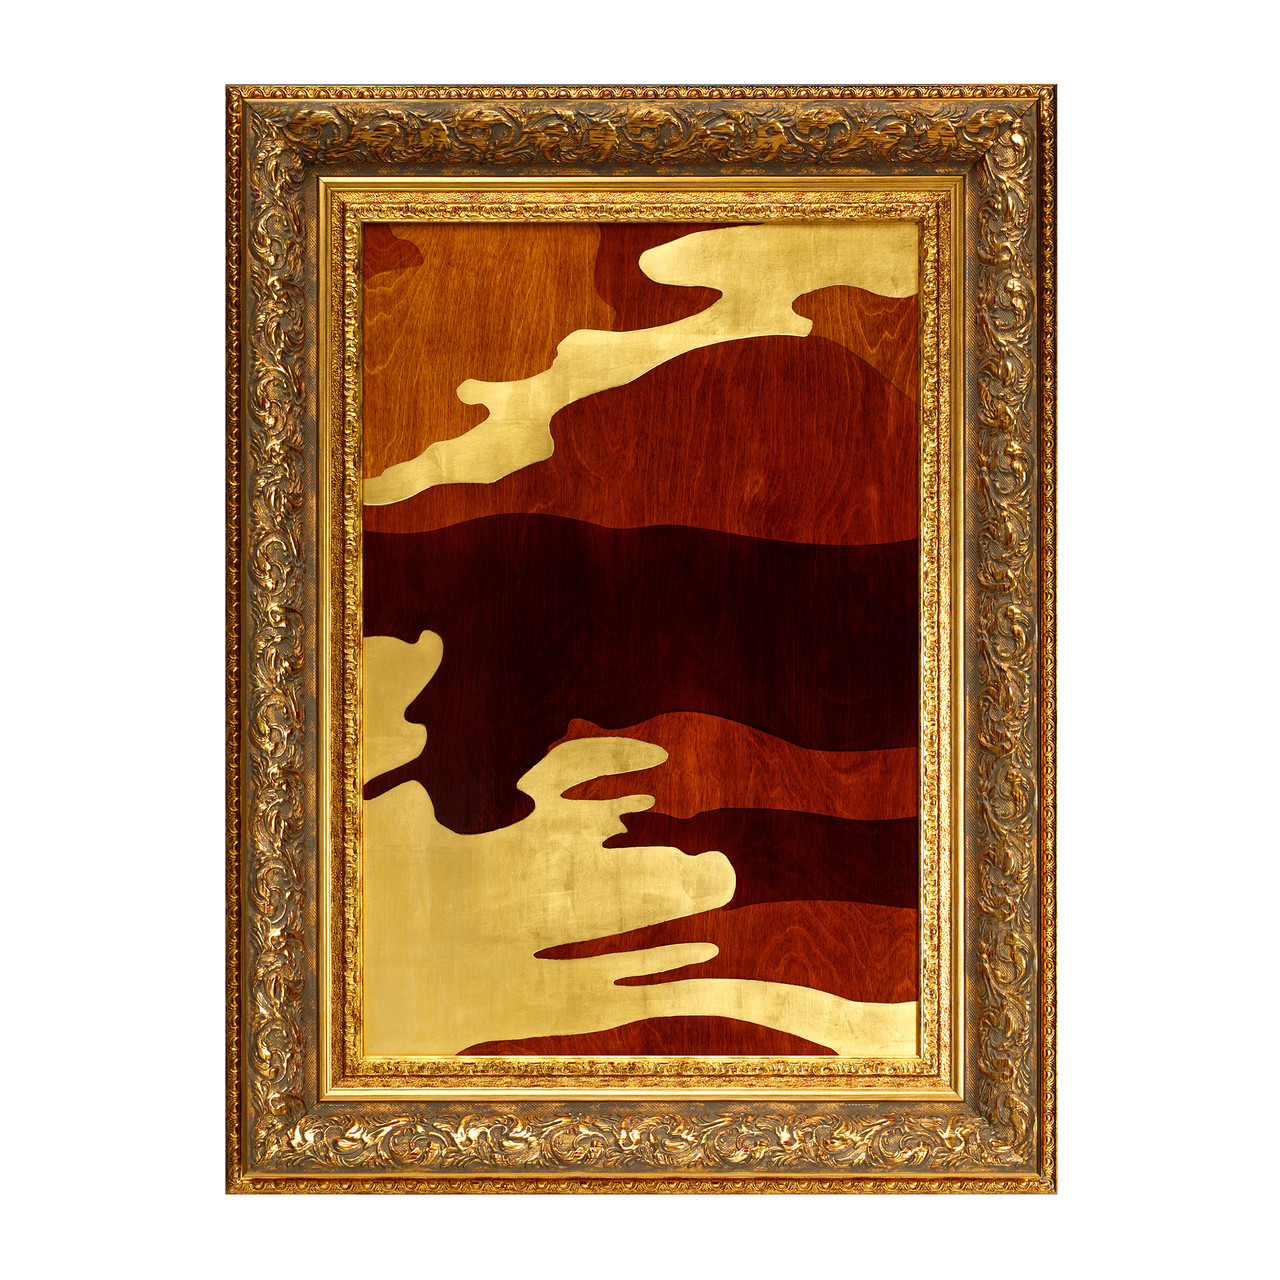 'Gold Camo' series _ Alexander the Great